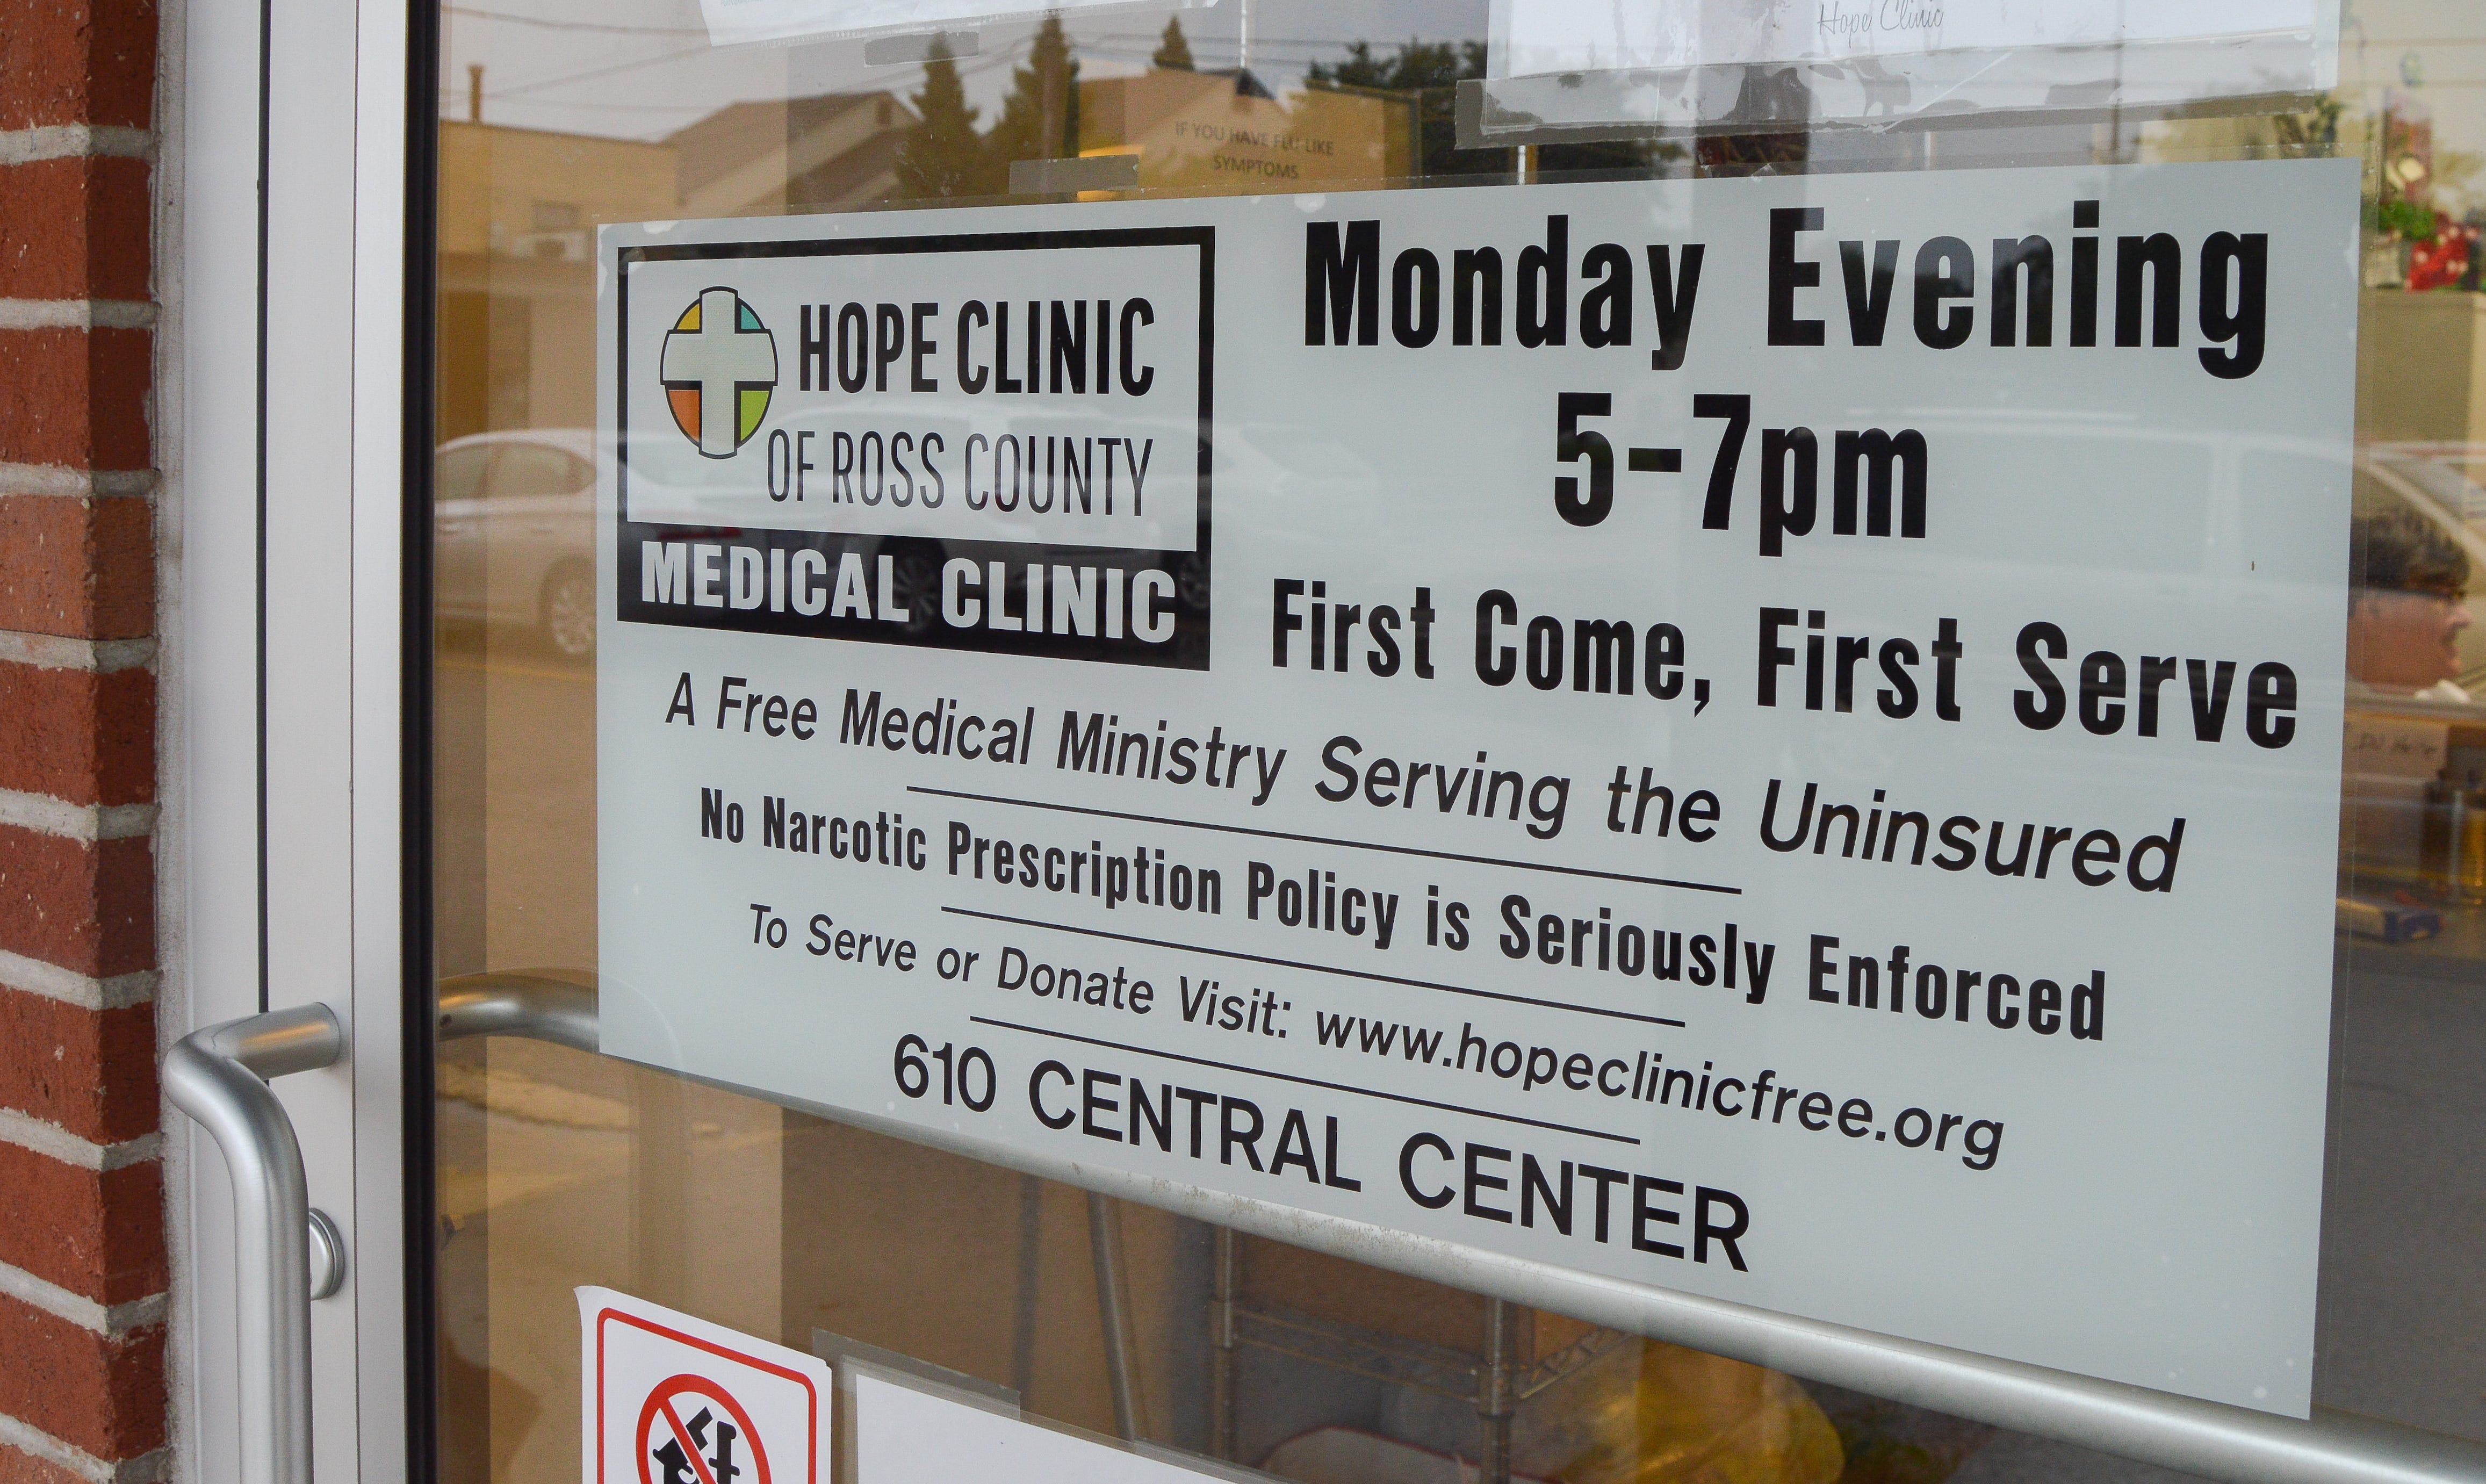 Hope Clinic Looking To Add Patients After Seven Years Of Operations